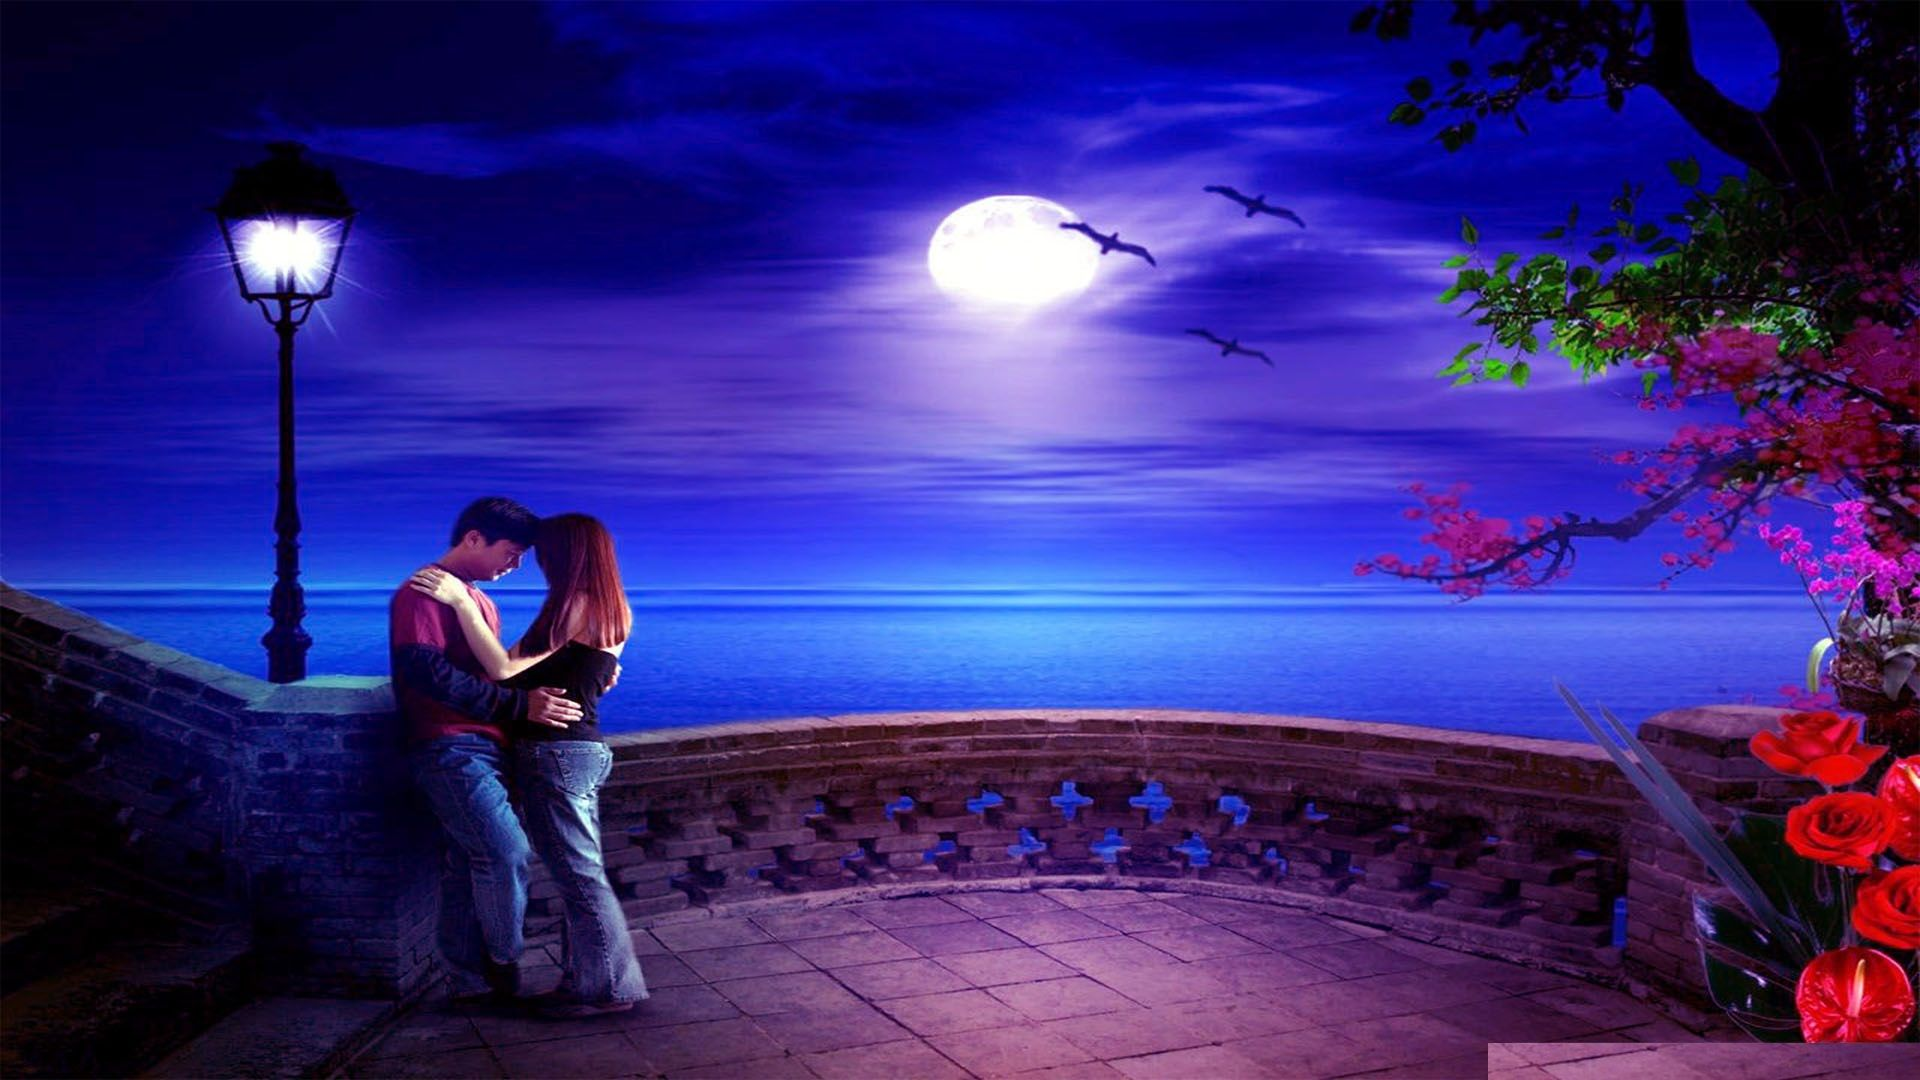 Love Romantic Full Hd Wallpaper : Romantic Love HD Wallpapers : Find best latest Romantic Love HD Wallpapers for your Pc desktop ...